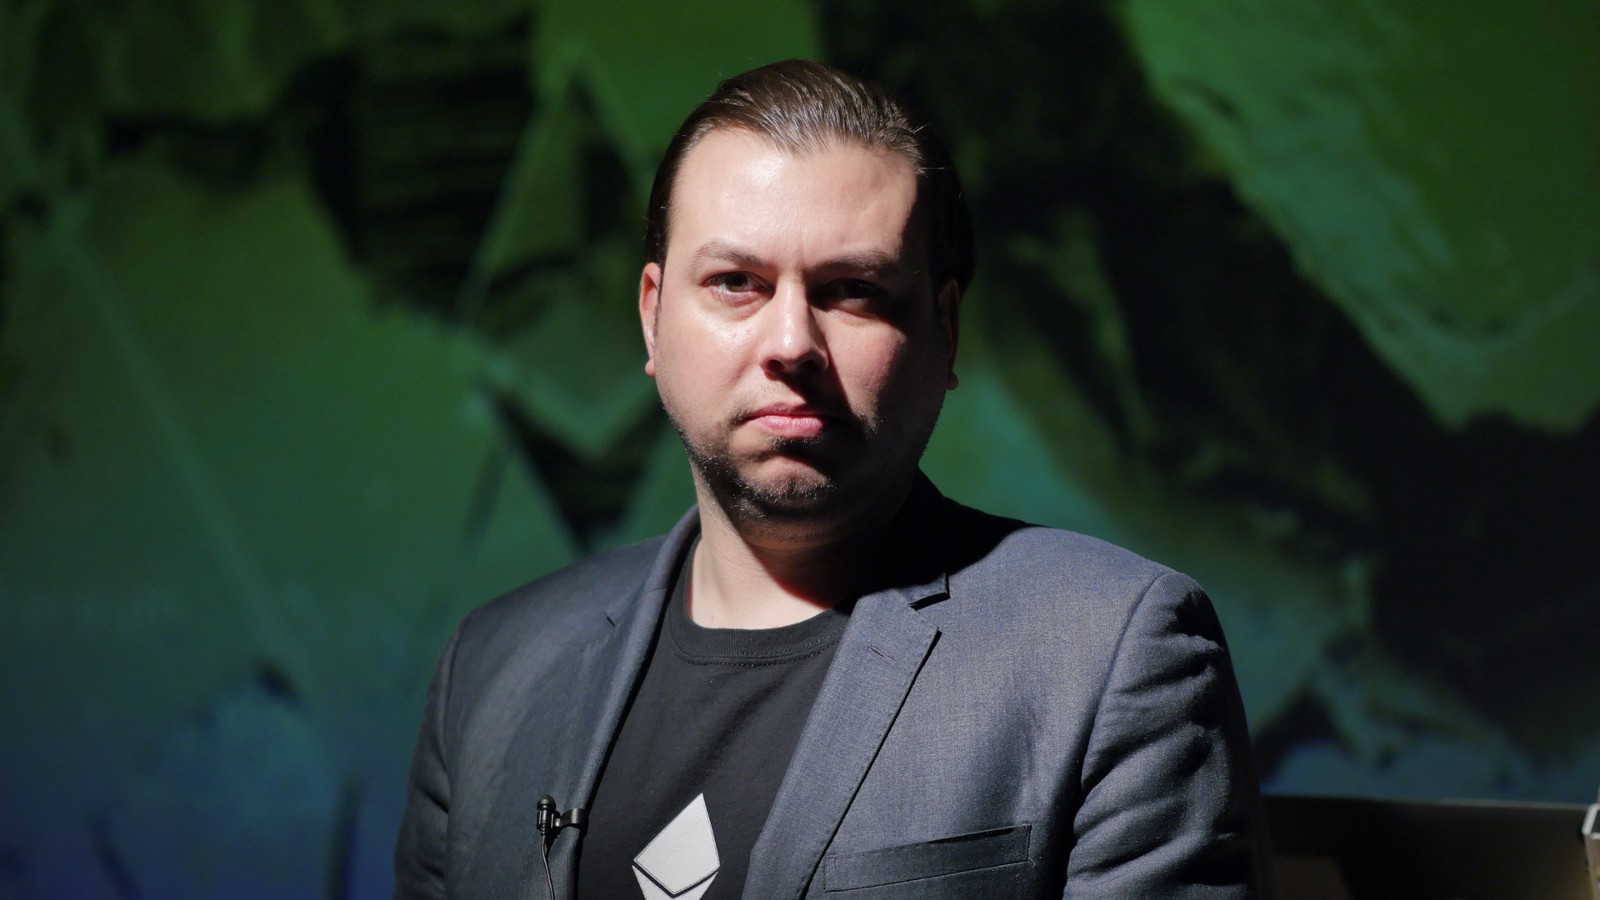 Former Ethereum CCO Stephan Tual joins Slock.it Team